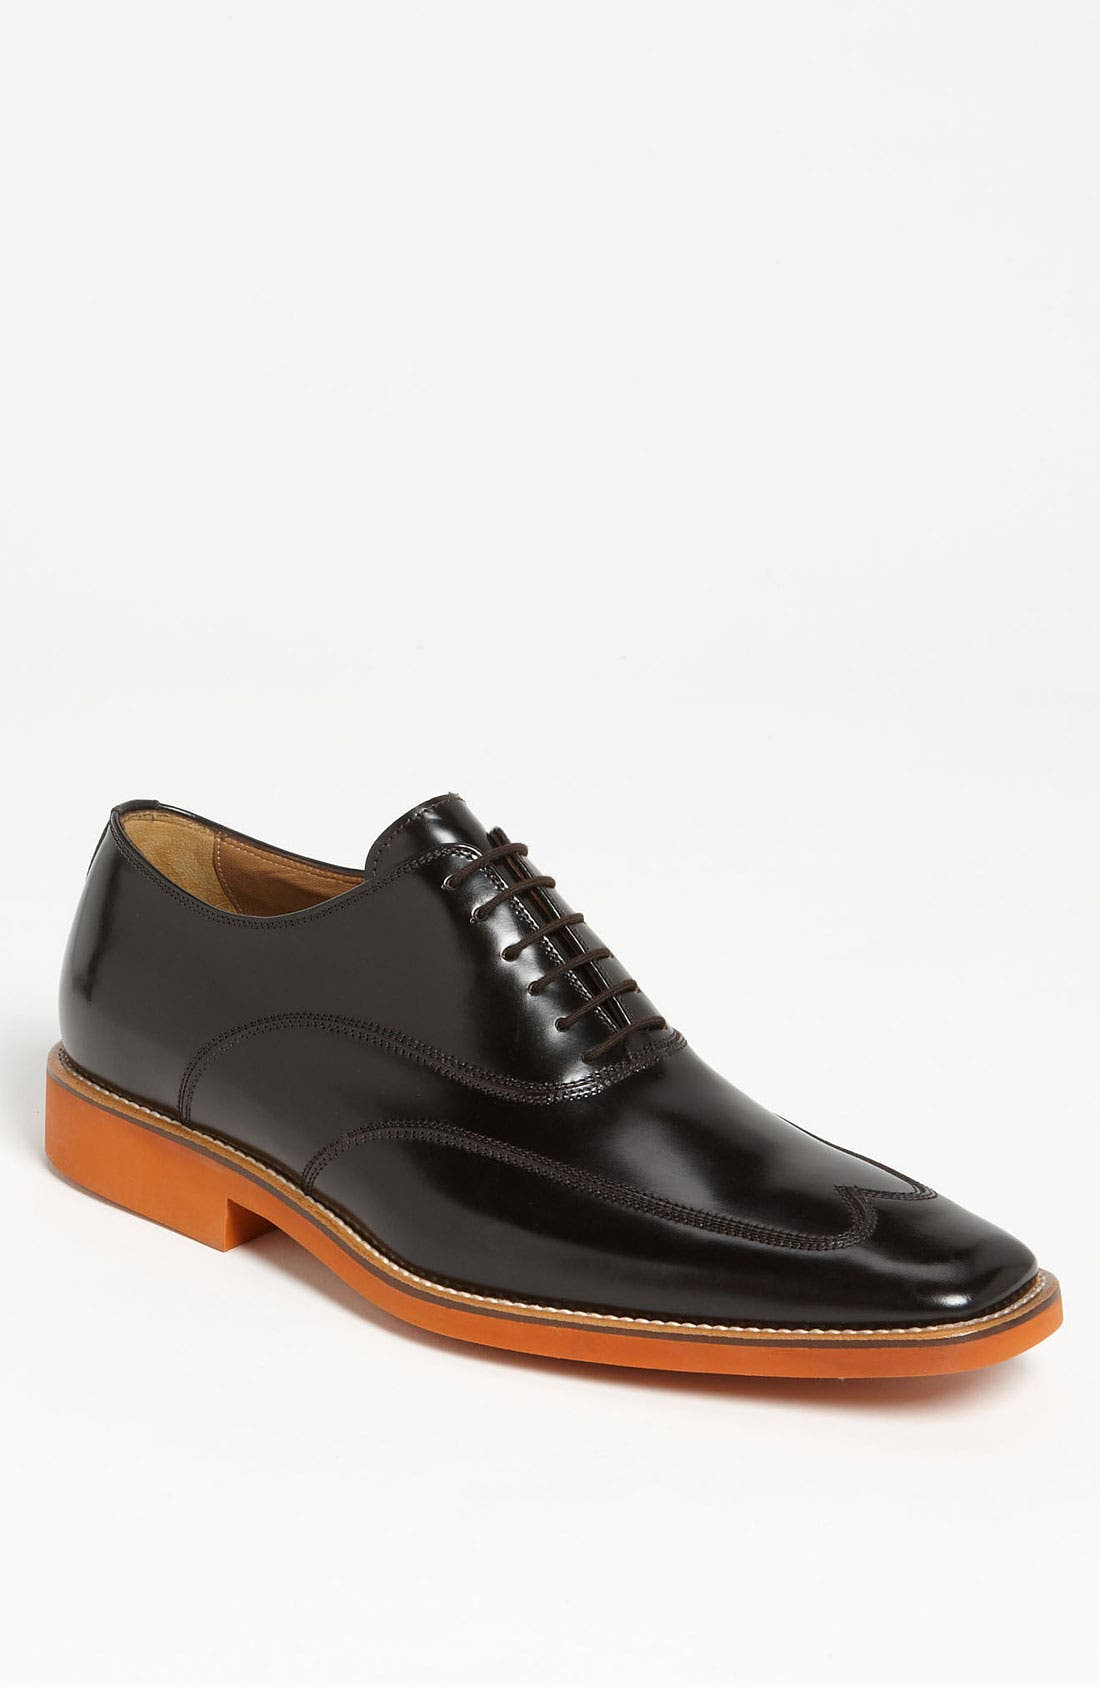 Alternate Image 1 Selected - Michael Toschi 'Luciano' Patent Leather Wingtip